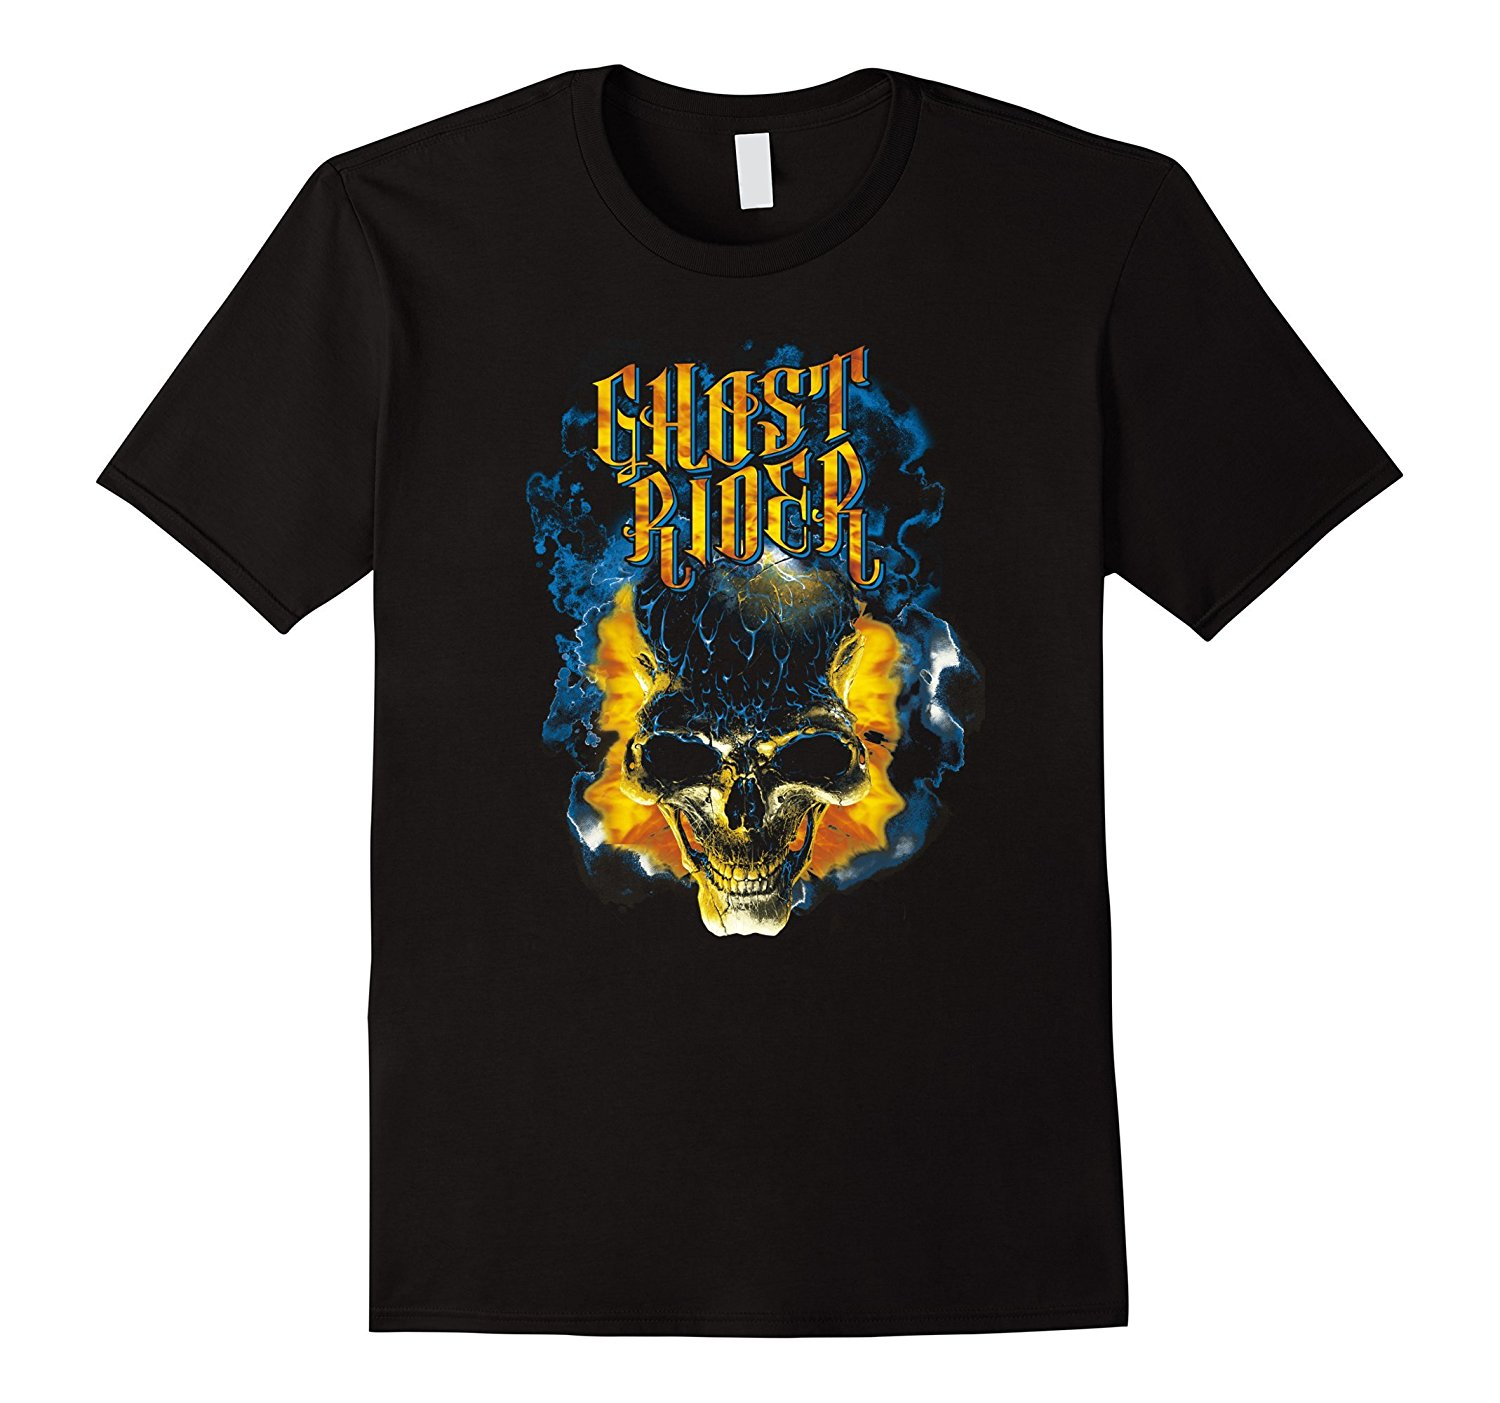 Gildan Ghost Rider Skull Urban Street Flames Graphic T Shirt MenS T Shirts Summer Style Fashion Swag Men T Shirts S 3Xl